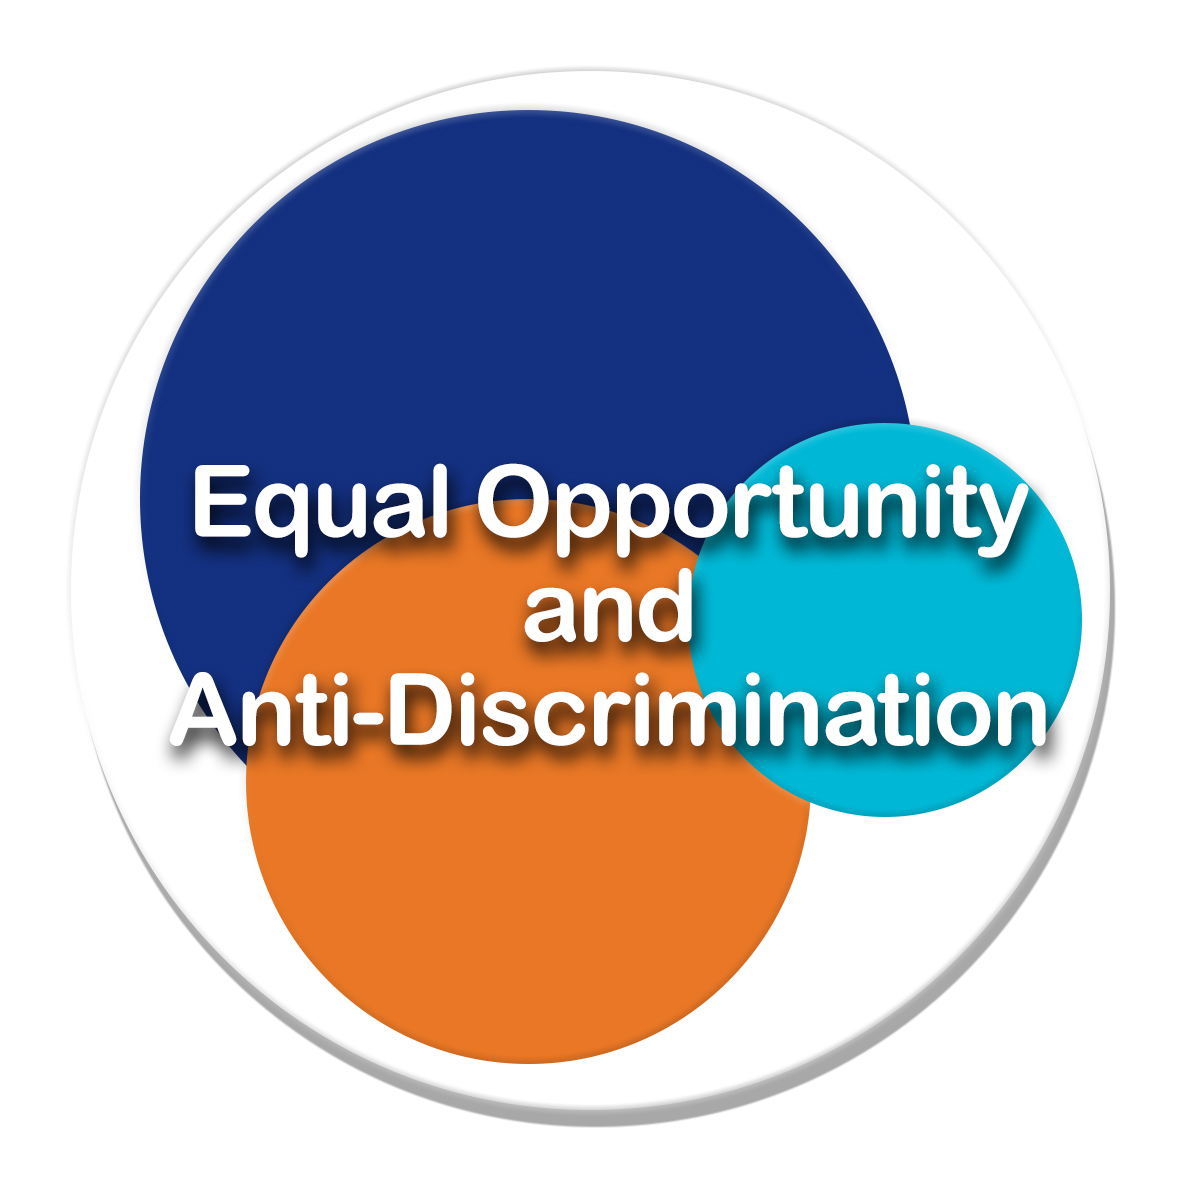 Leading with the why behind Equal Opportunity and Anti-Discrimination with recruitment specific best practices